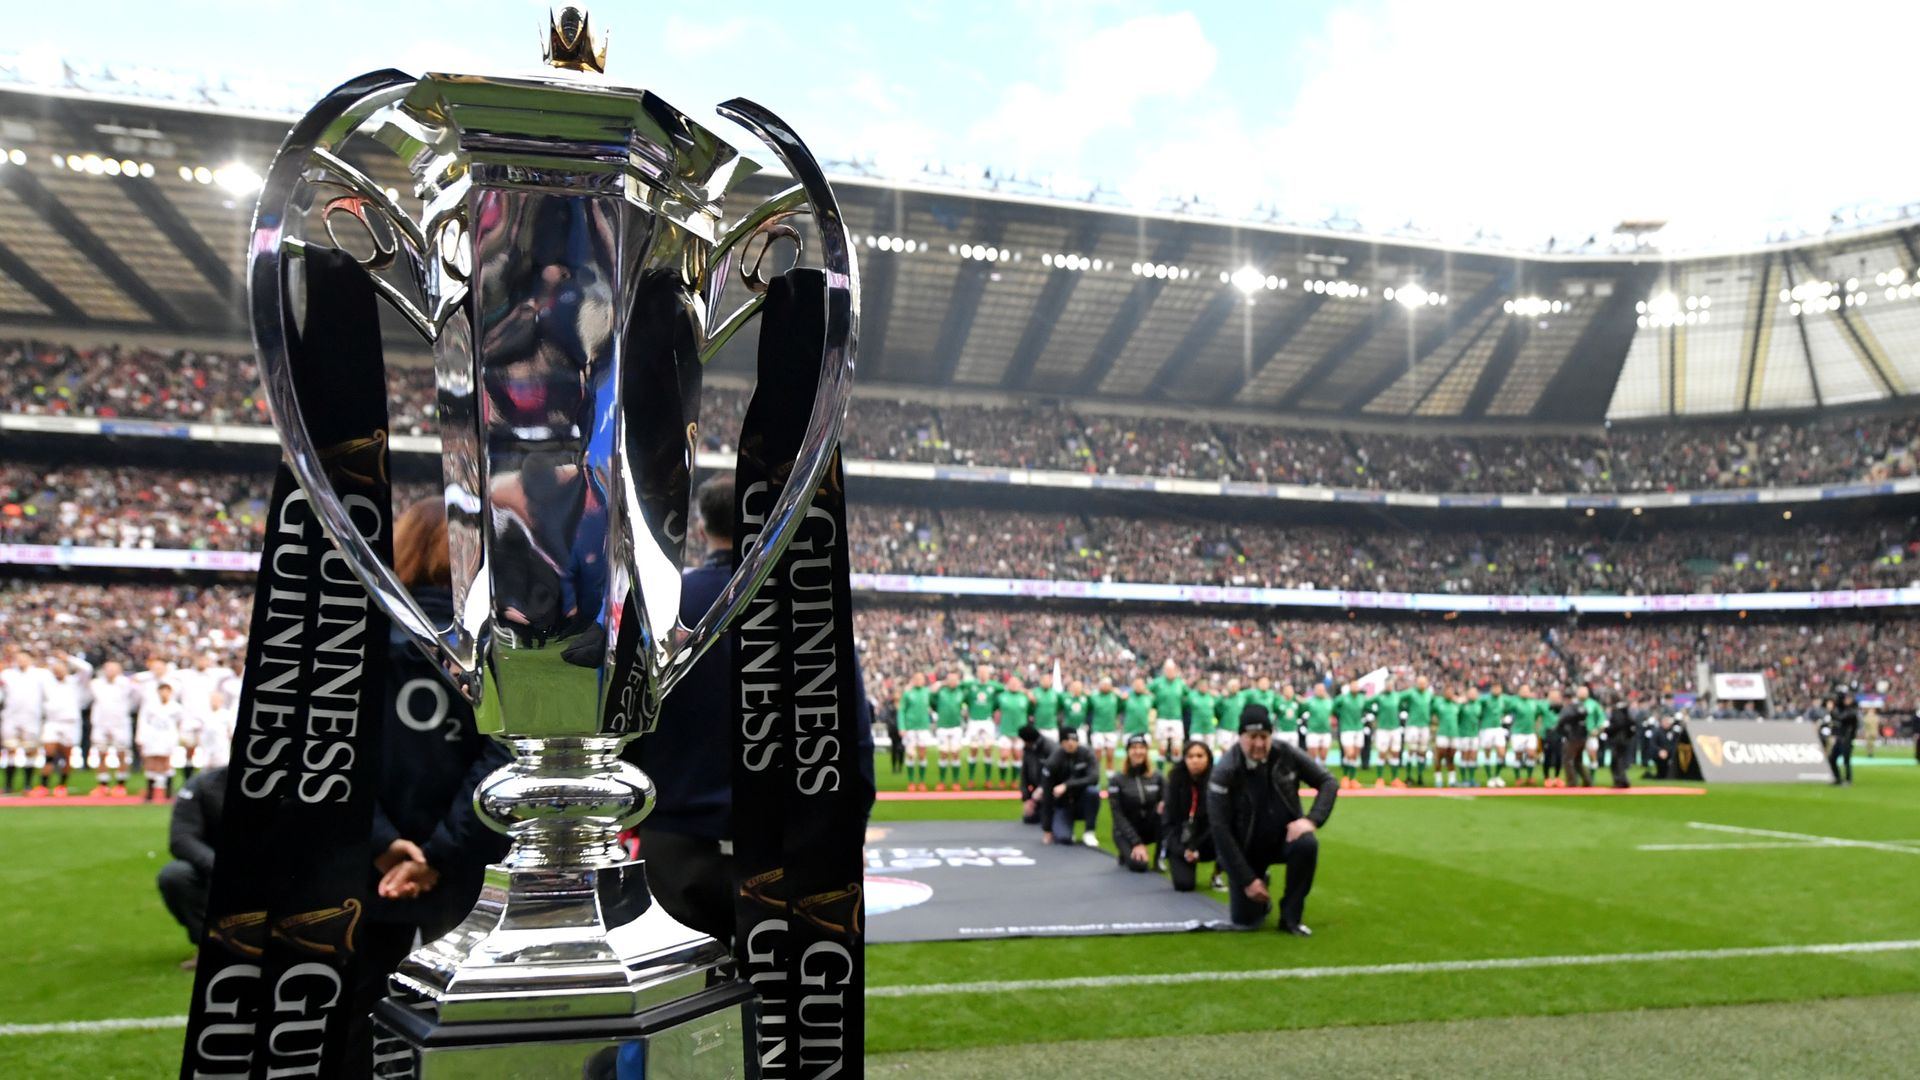 Ireland cleared to resume Six Nations